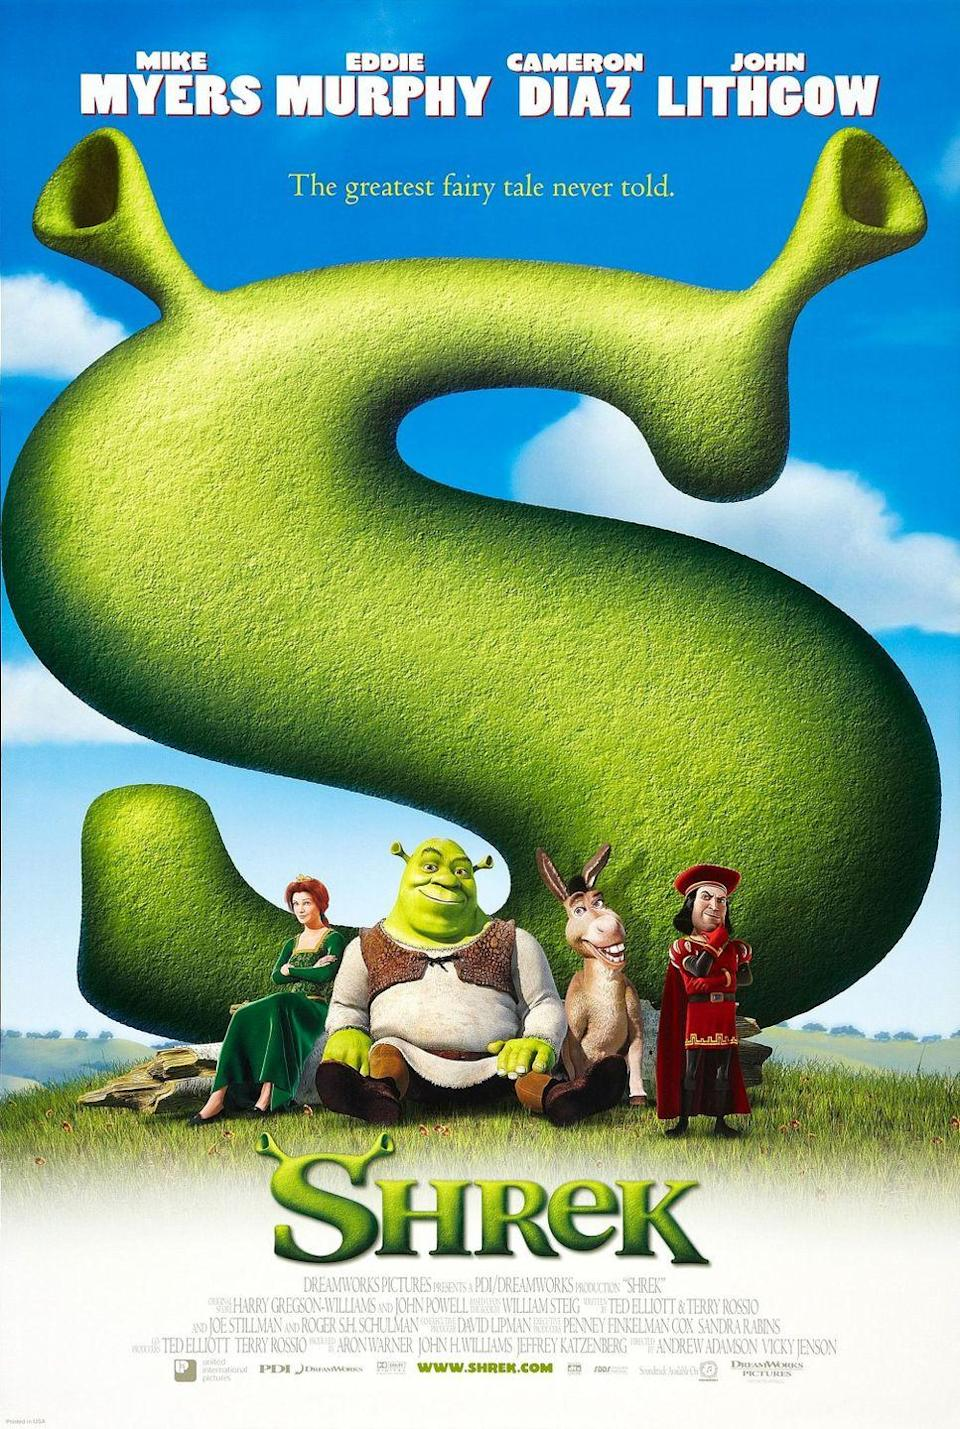 <p>Loosely based on the book <em>Shrek!</em> by William Steig, this runaway hit premiered on April 22, 2001 and fairy tales haven't been the same since. Who could have guessed that an Ogre (voiced by Mike Meyers), a donkey (voiced by Eddie Murphy) and a Princess (voiced by Cameron Diaz) would turn into an entire franchise? A new installment is rumored to be coming out next year. </p>